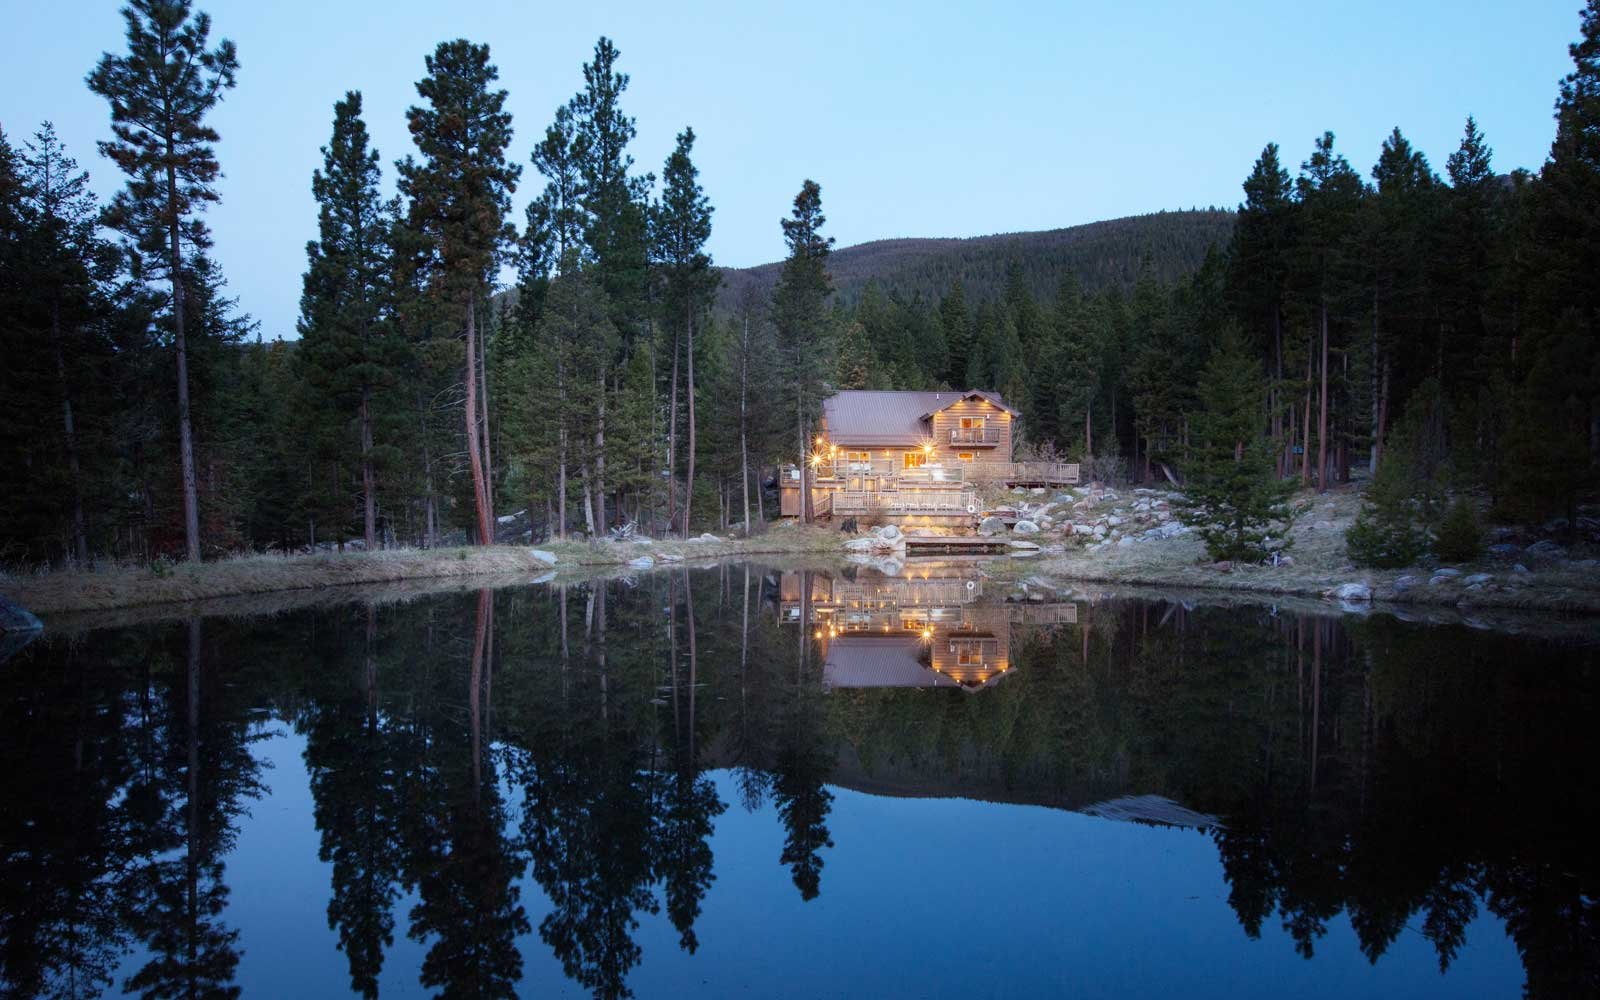 Night view of a cabin at Triple Creek Ranch